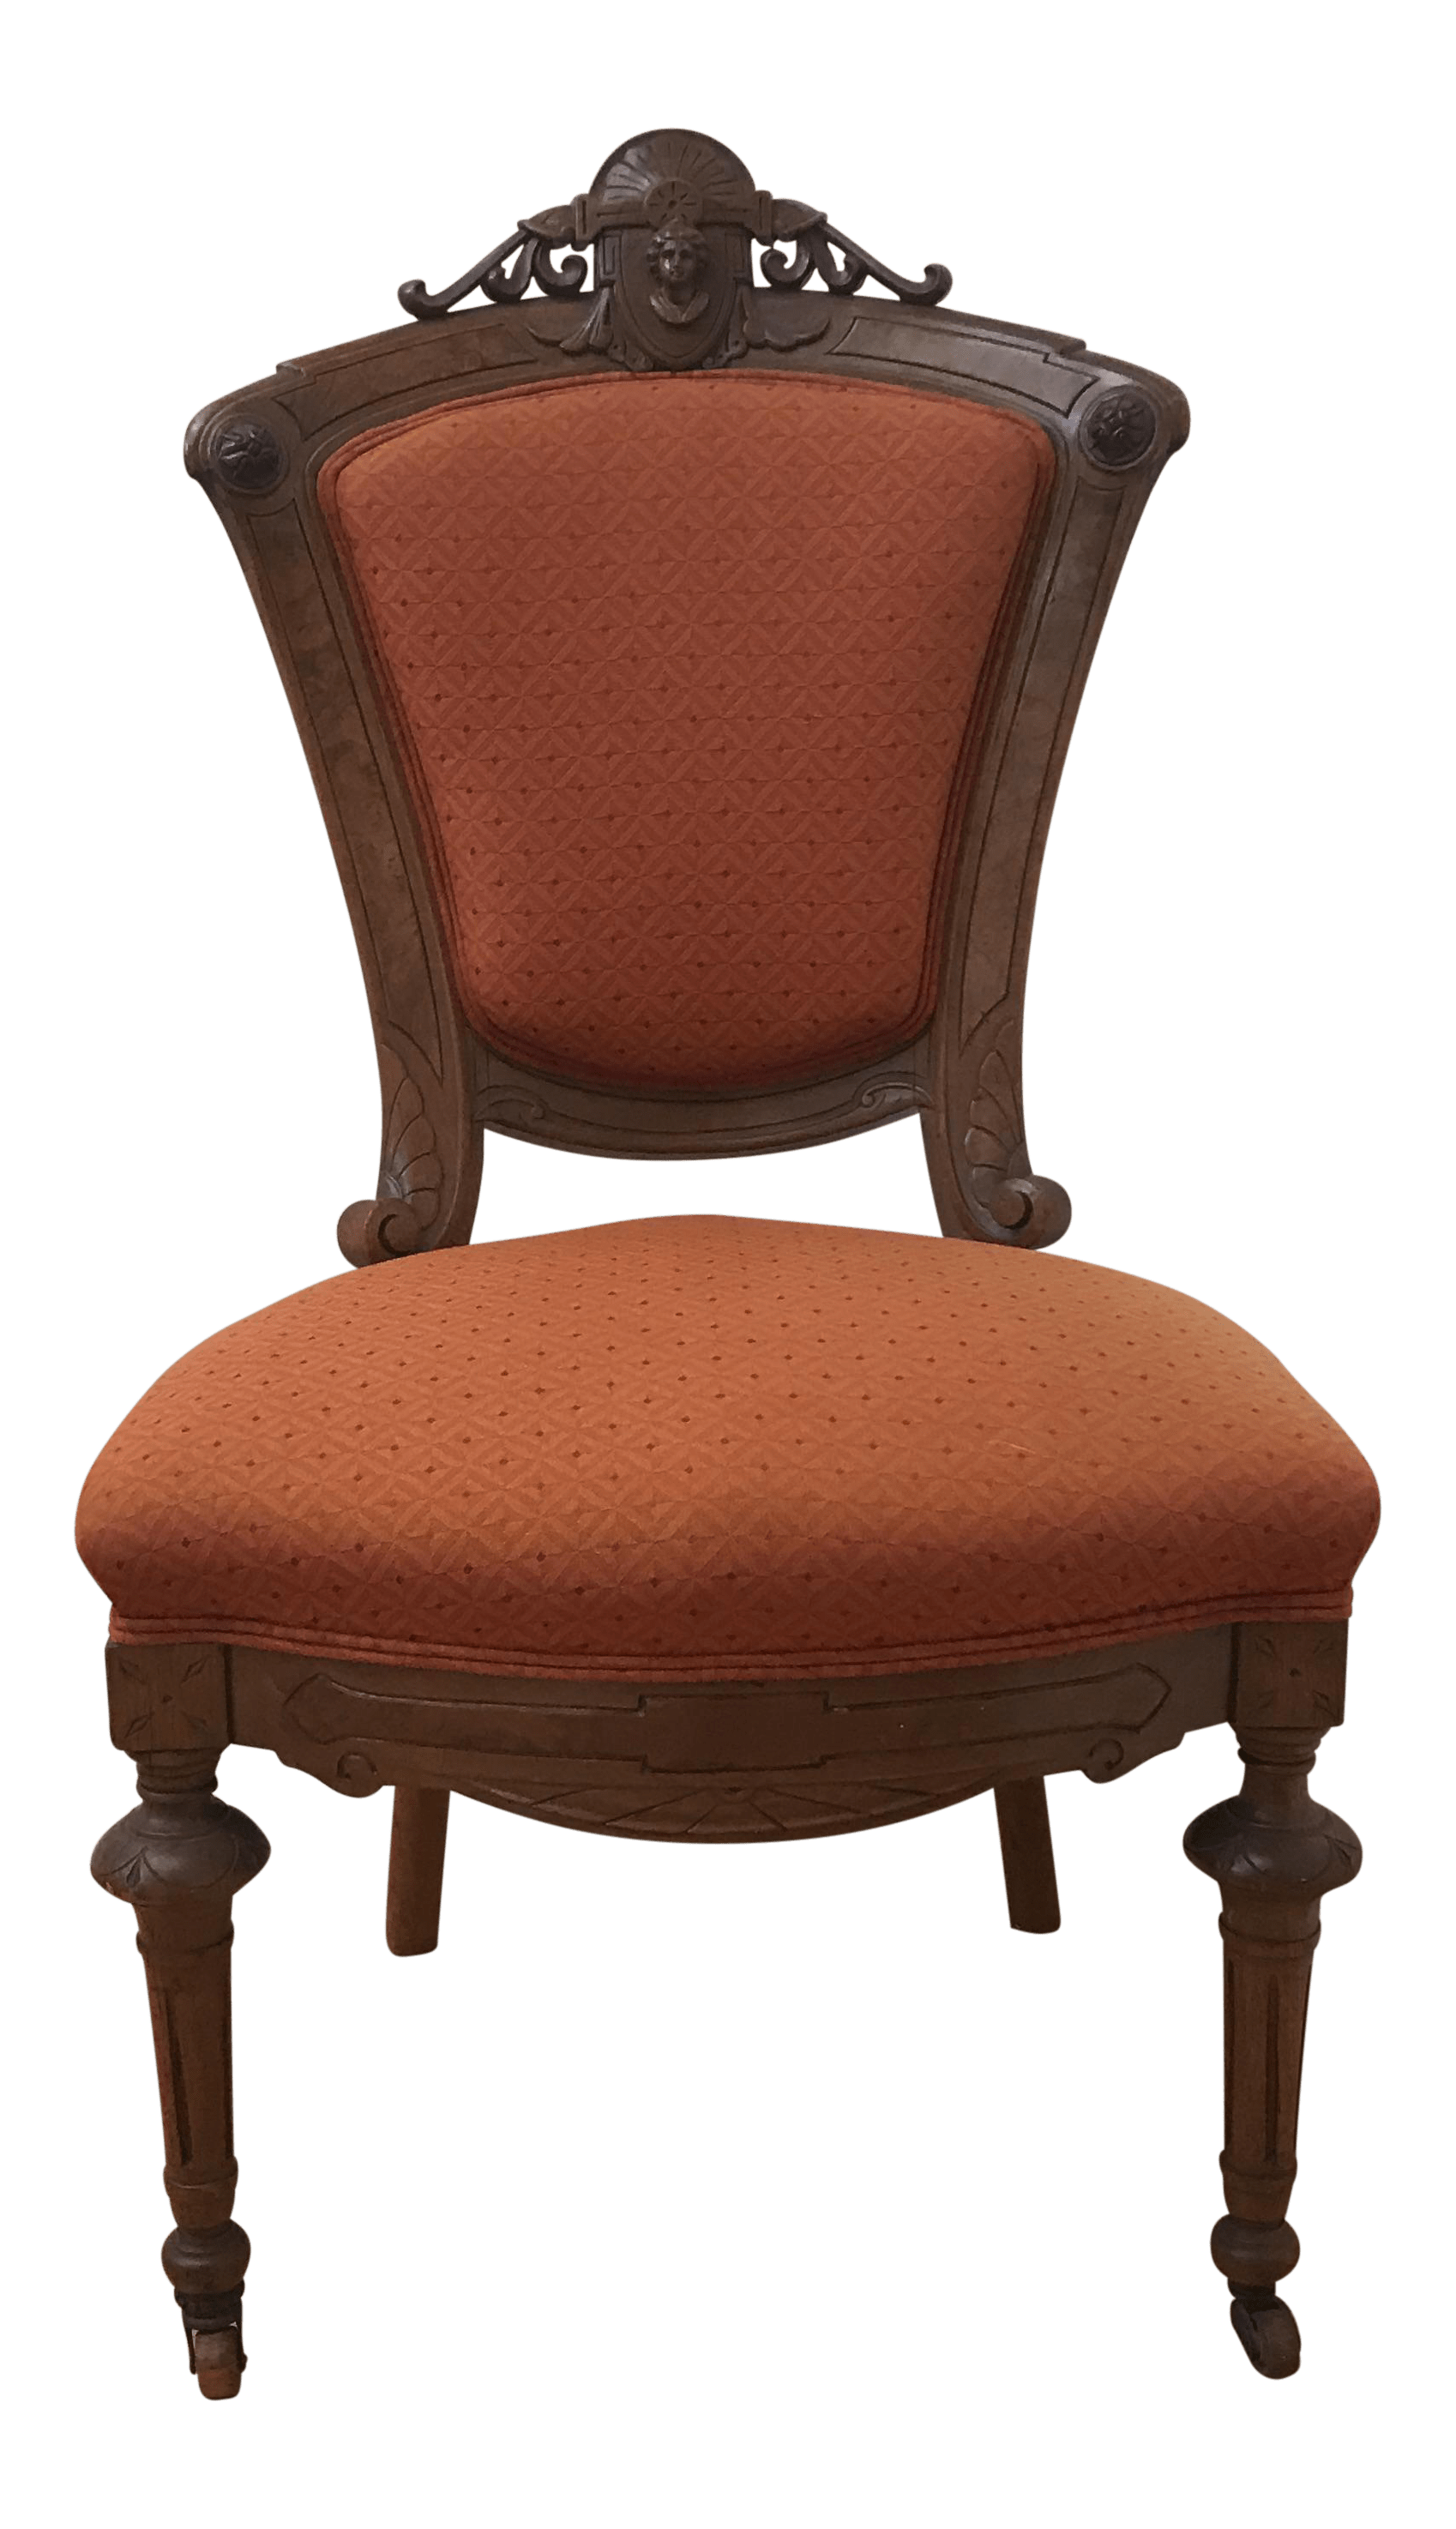 eastlake victorian parlor chairs are sit me up good for babies chair chairish